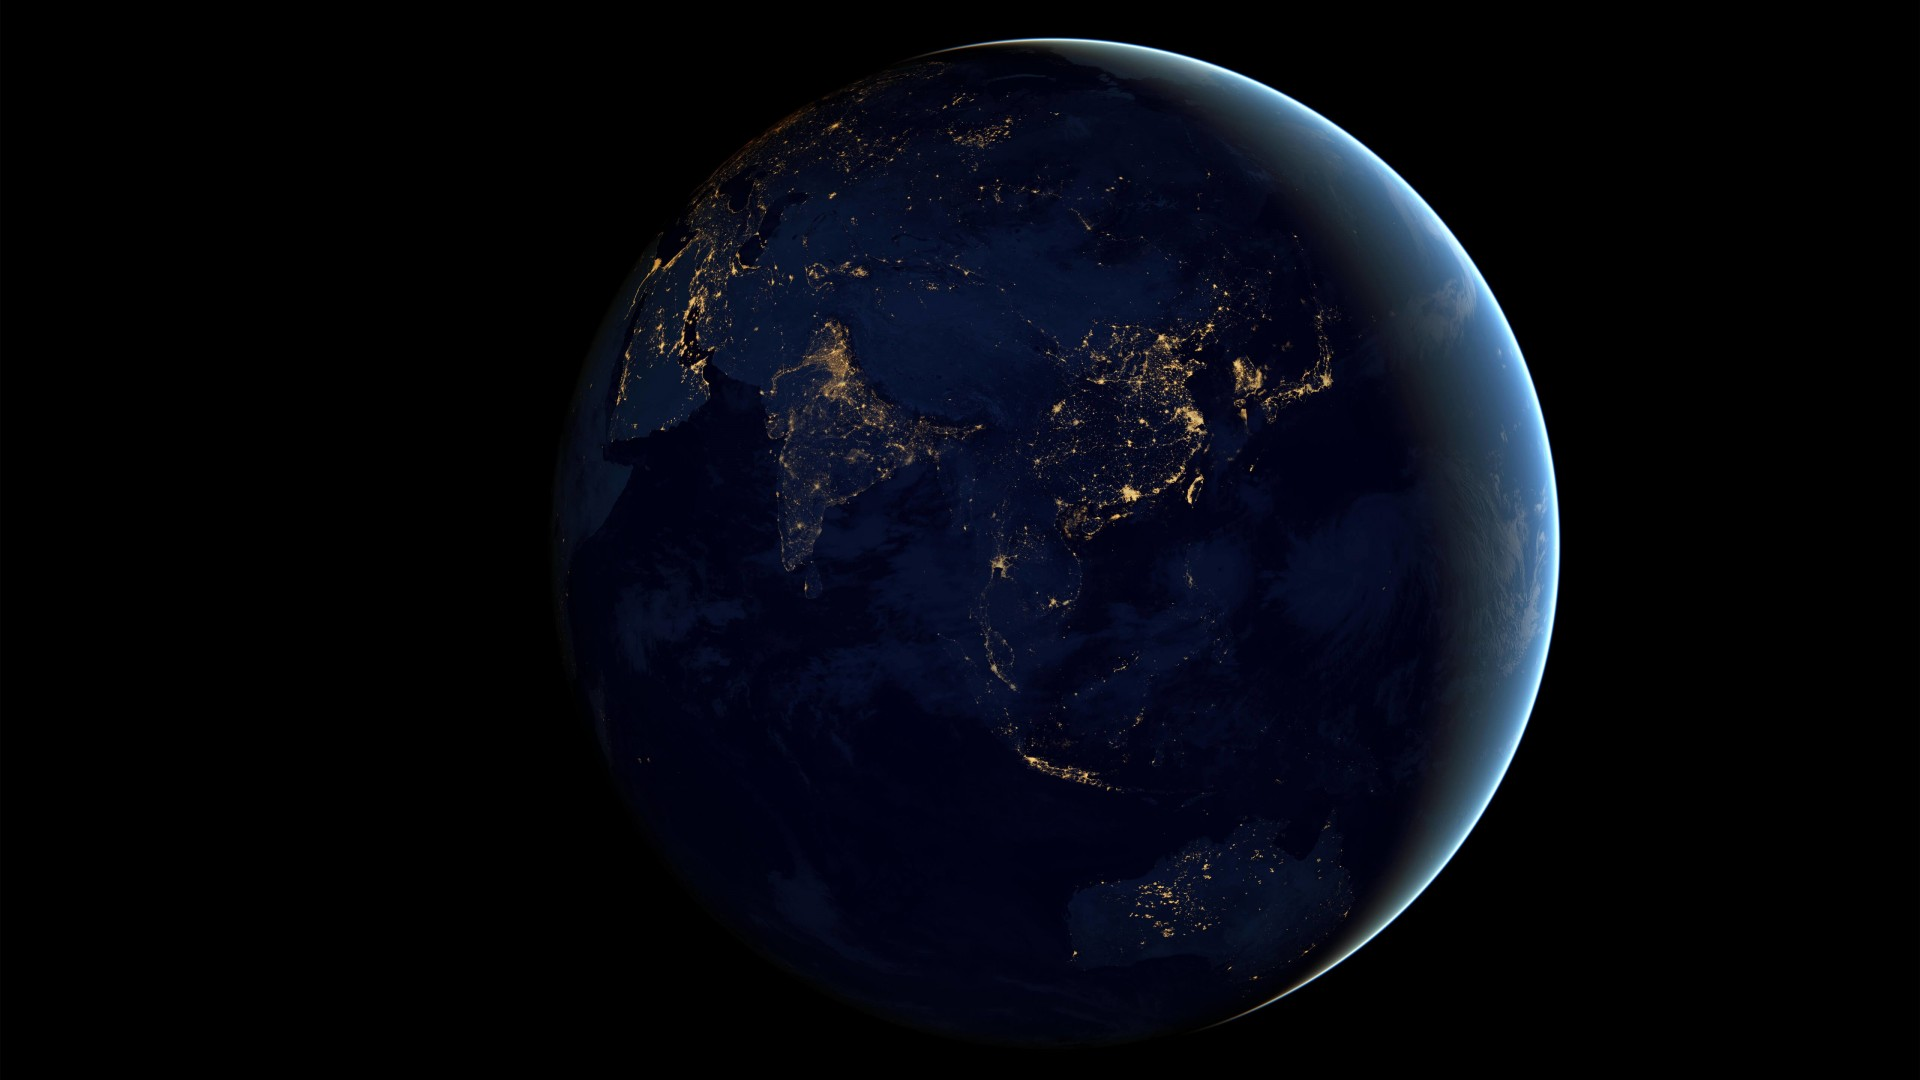 Earth At Night Seen From Space Wallpaper for Desktop 1920x1080